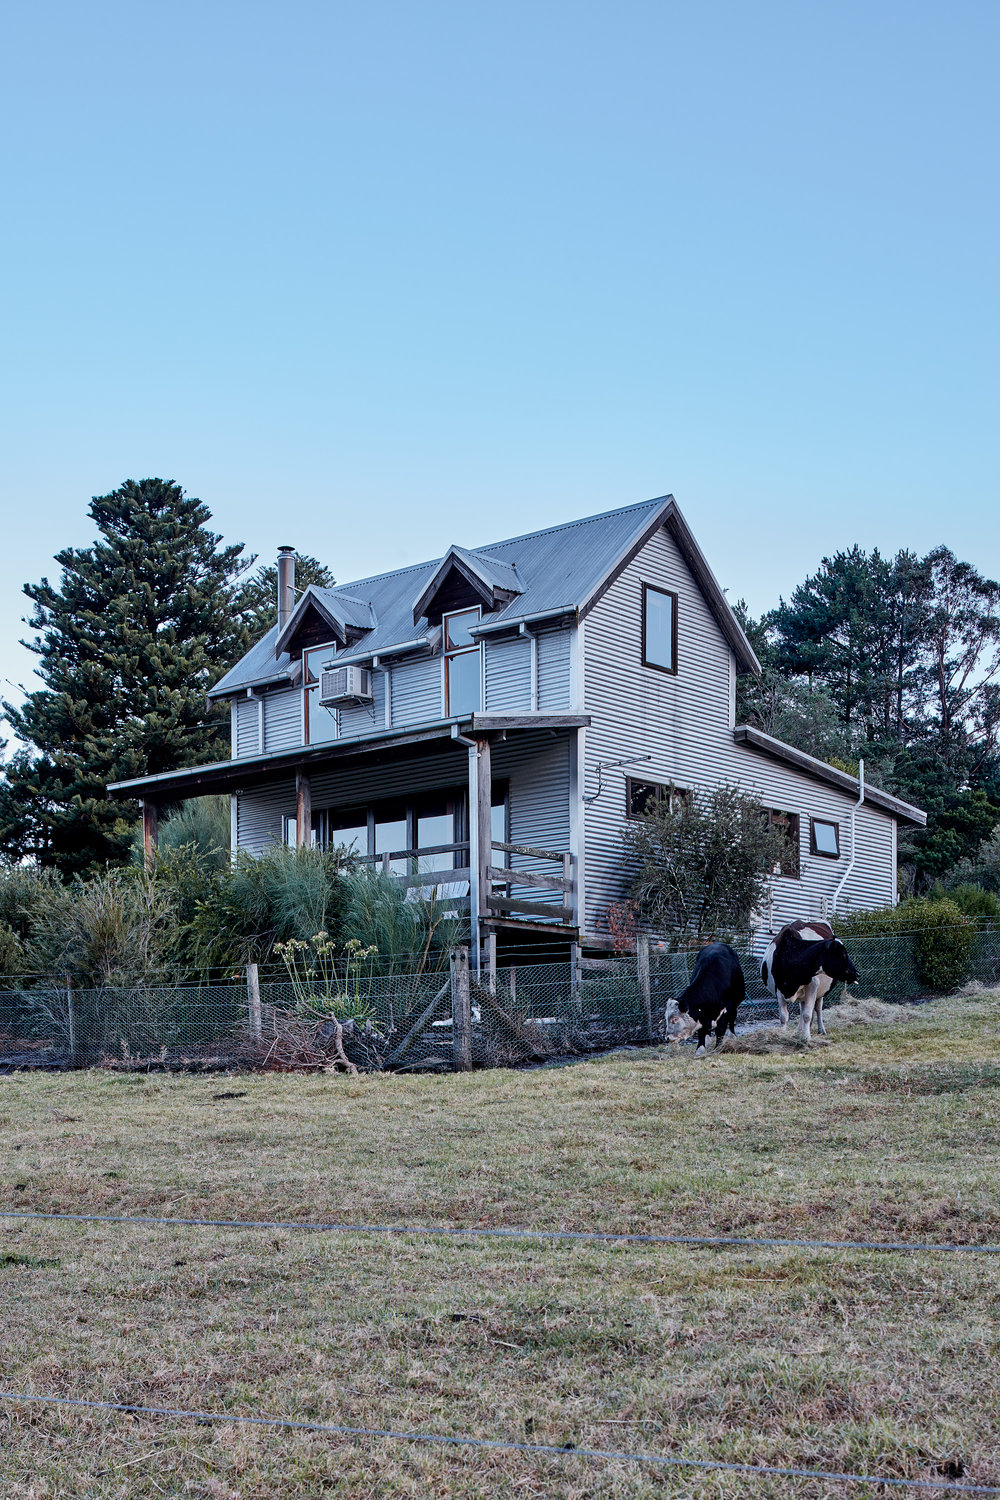 nathan-k-davis-architecture-architectural-photography-interior-exterior-residential-macks-creek-air-bnb-cottage-country-gippsland-2